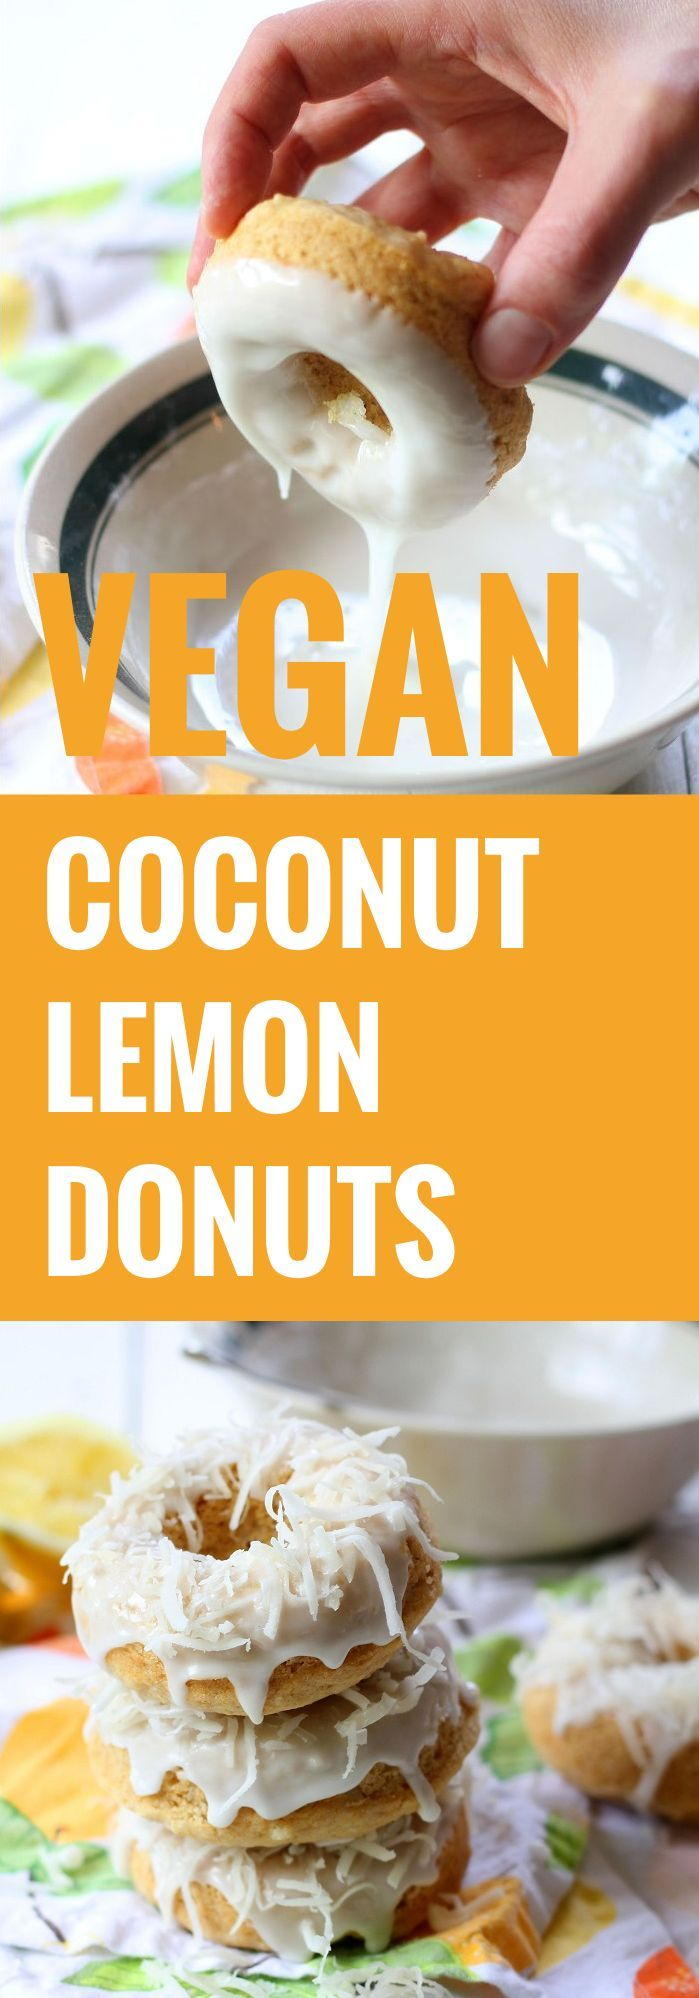 Backform #musthave Beschreibung auf Englisch Ein Traum auf der Zunge :-) Vegan Lemon Coconut Donuts make for a healthy snack or delicious breakfast recipe. Love this lemon treat!